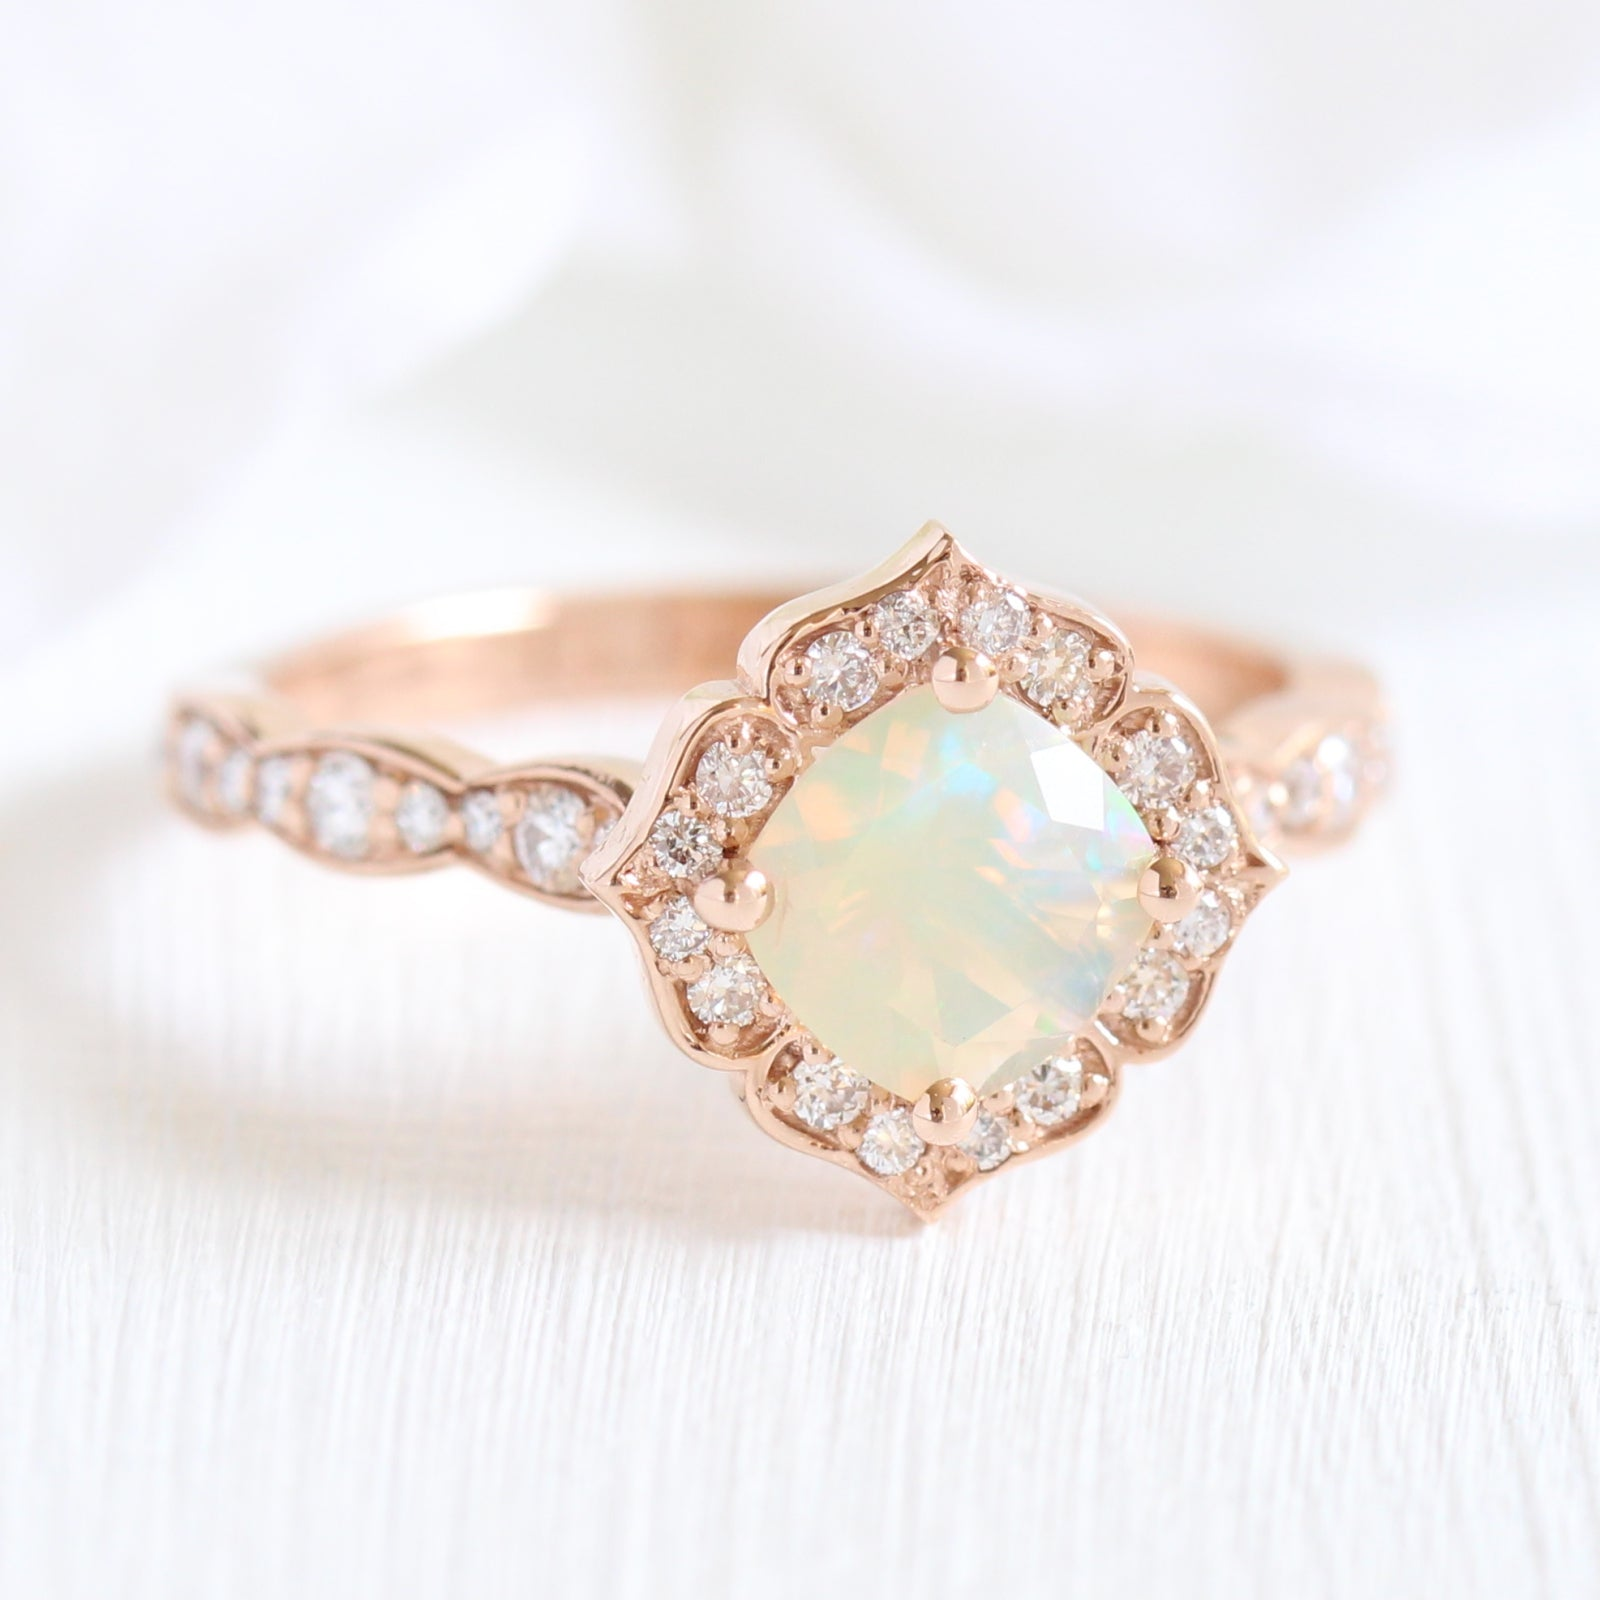 Mini Vintage Floral Ring In Scalloped Band W Opal And Diamond La More Design